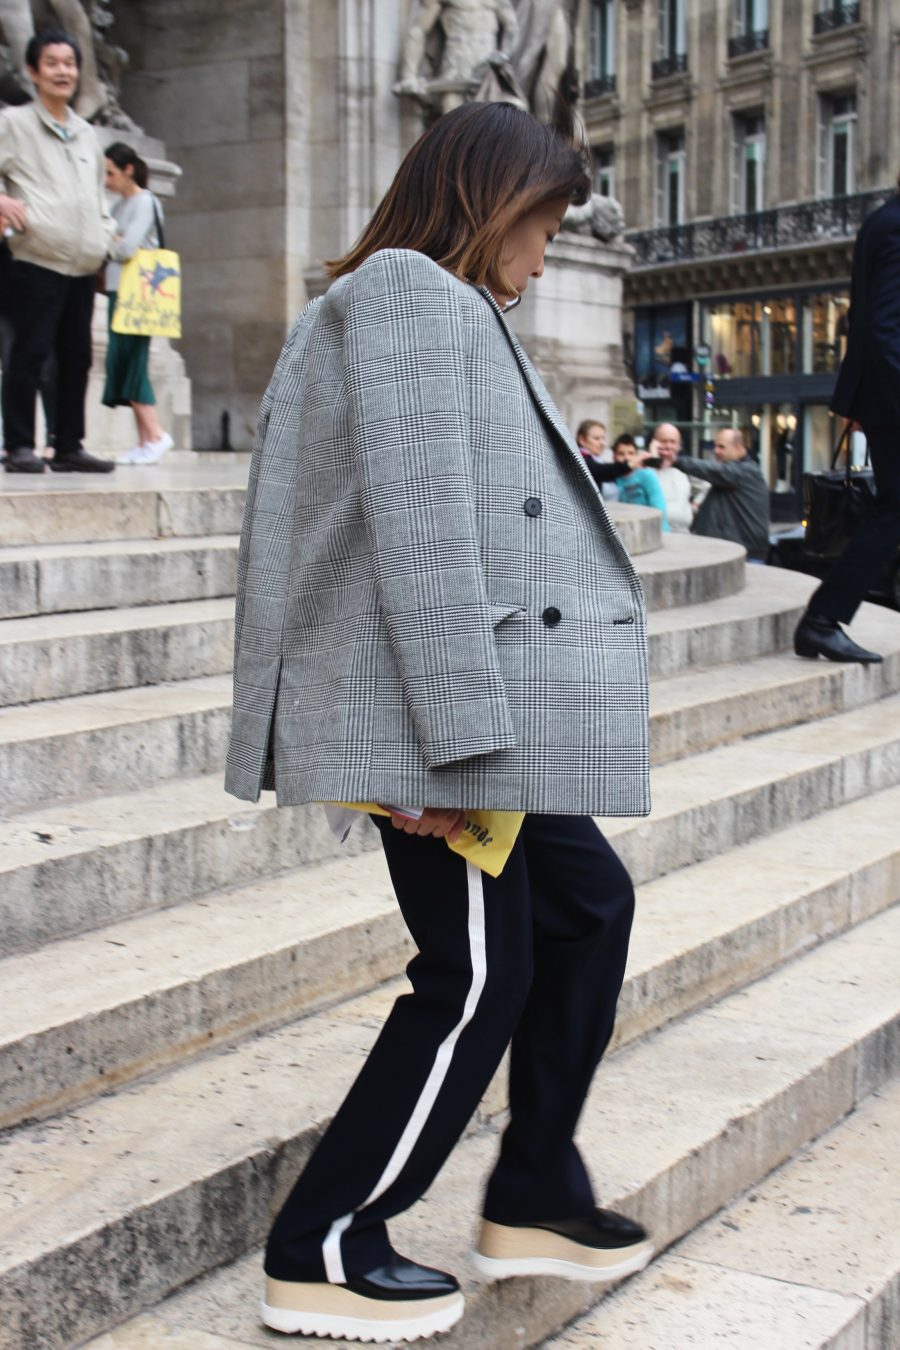 Street Style from Paris Fashion Week SS18, Day